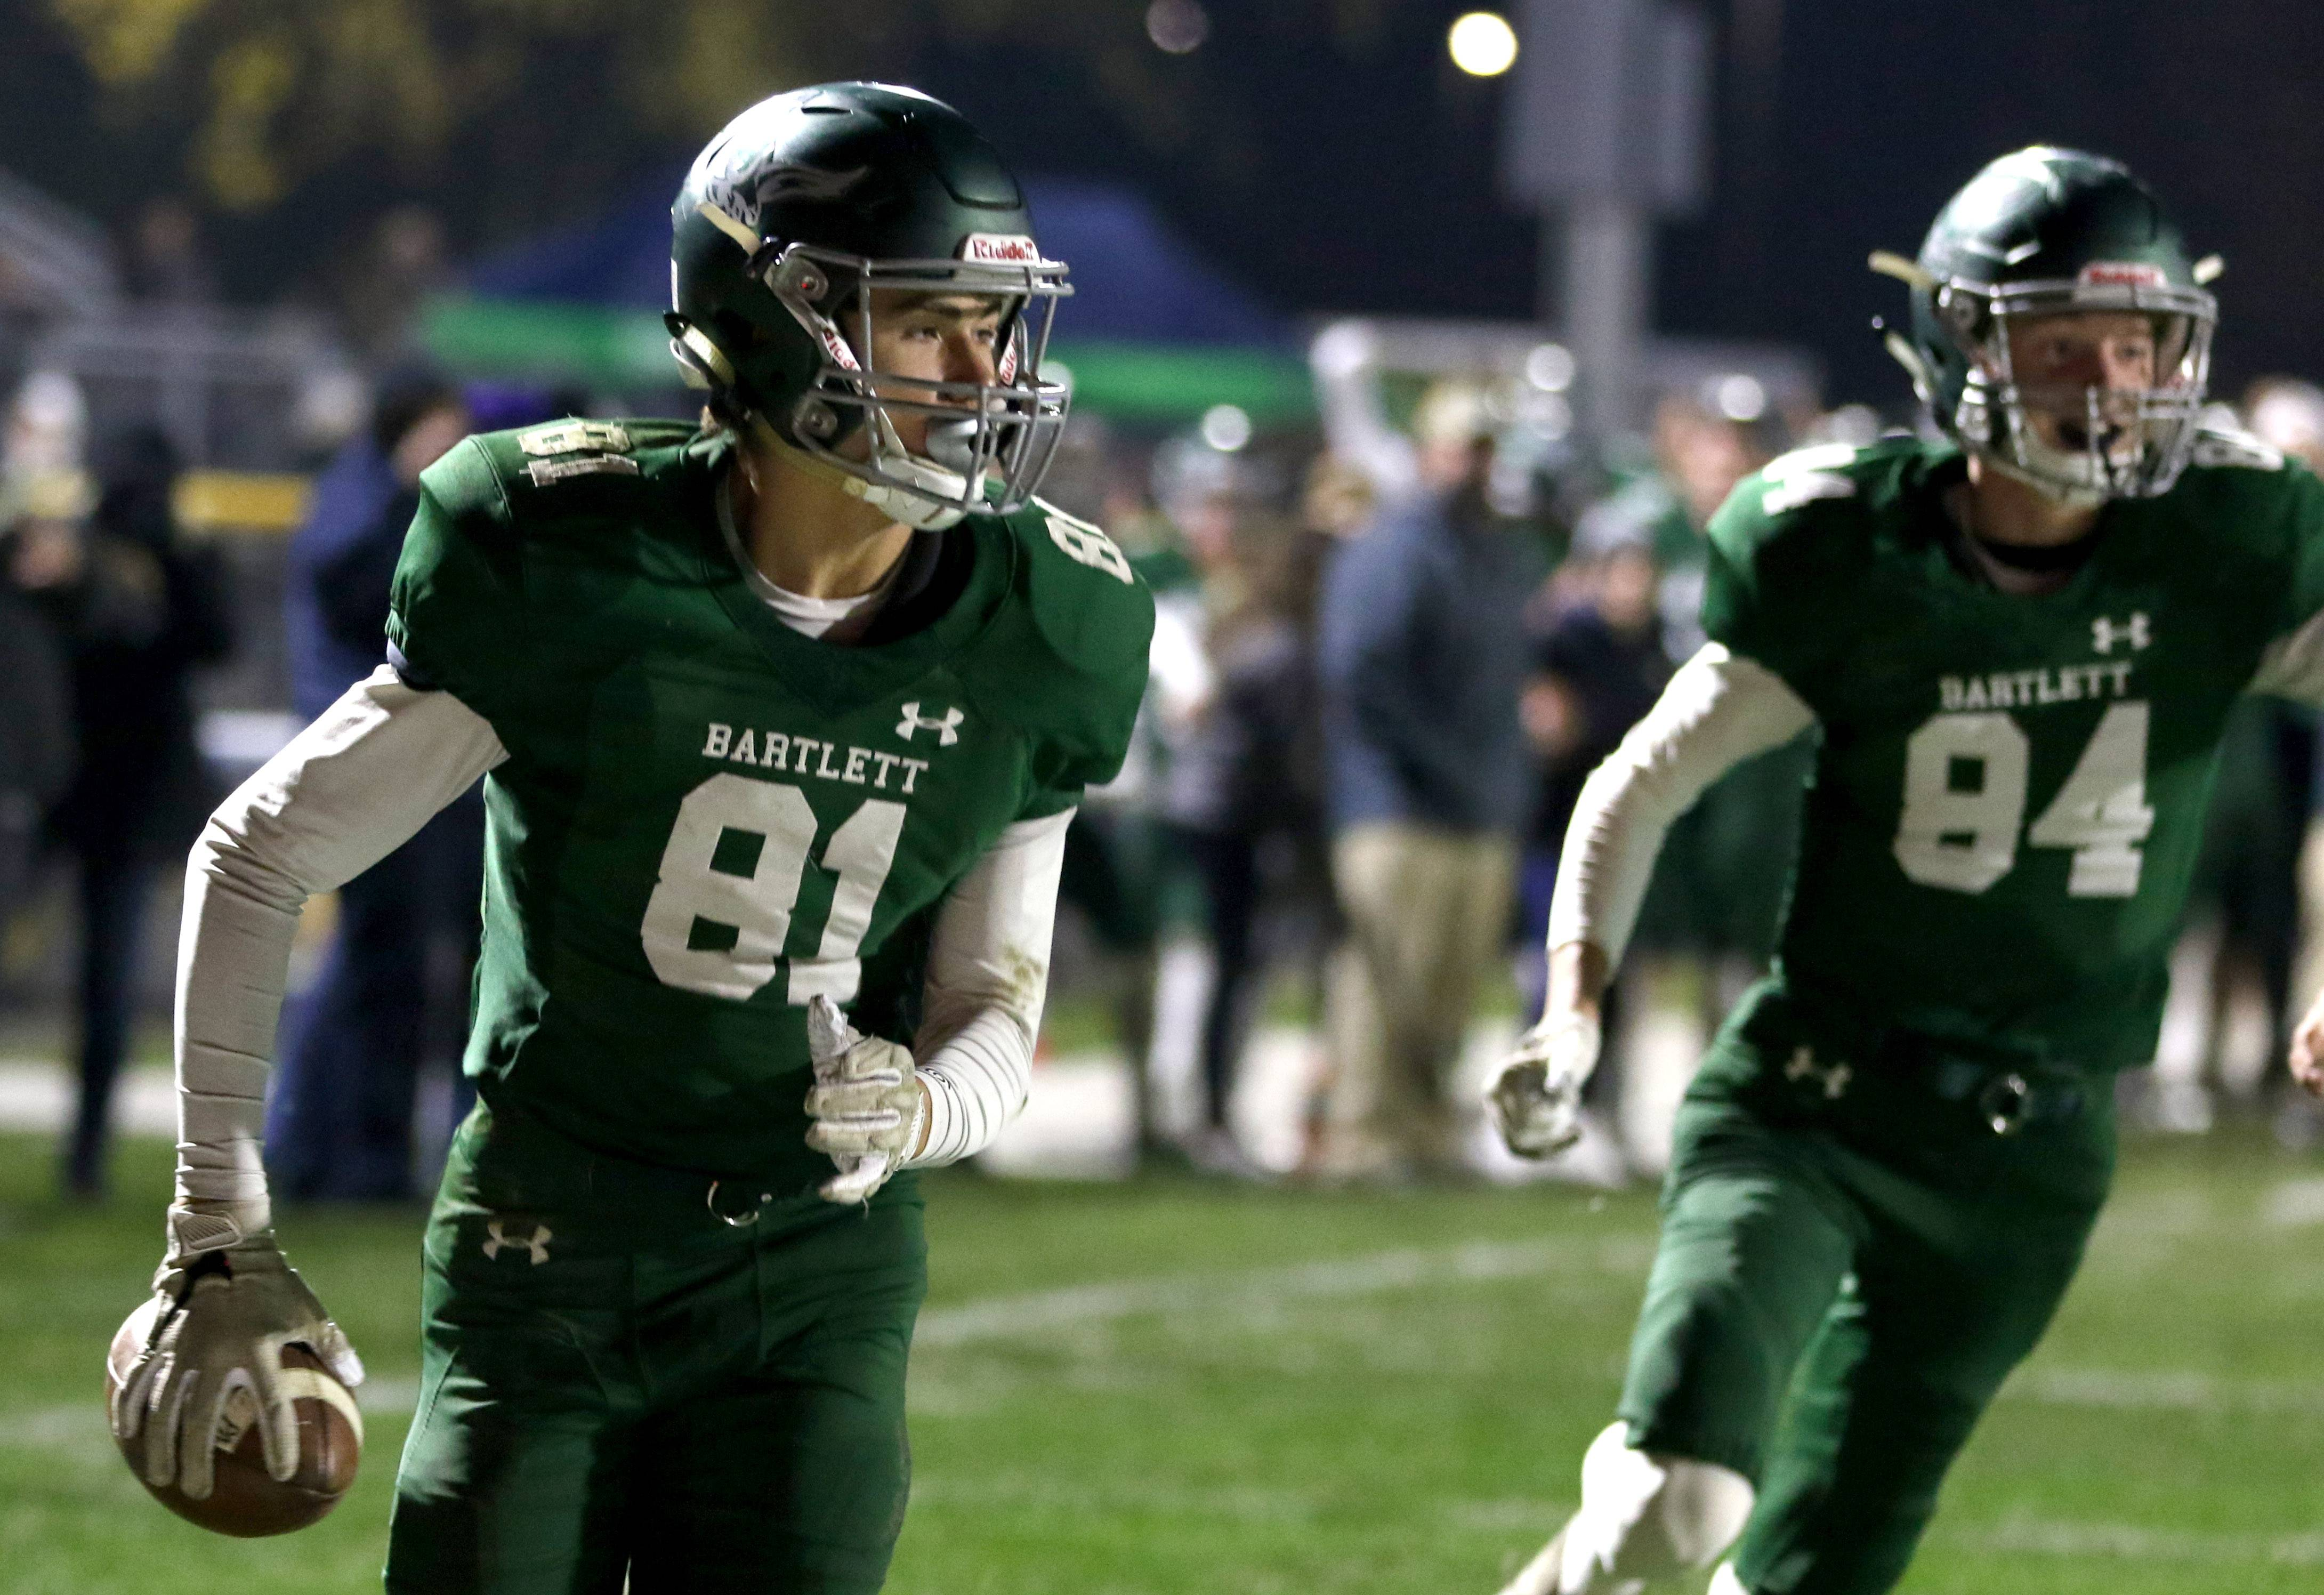 Bartlett's Mathew Young scampers in with a touchdown against Glenbard West during first round playoff football action at Bartlett Friday night.